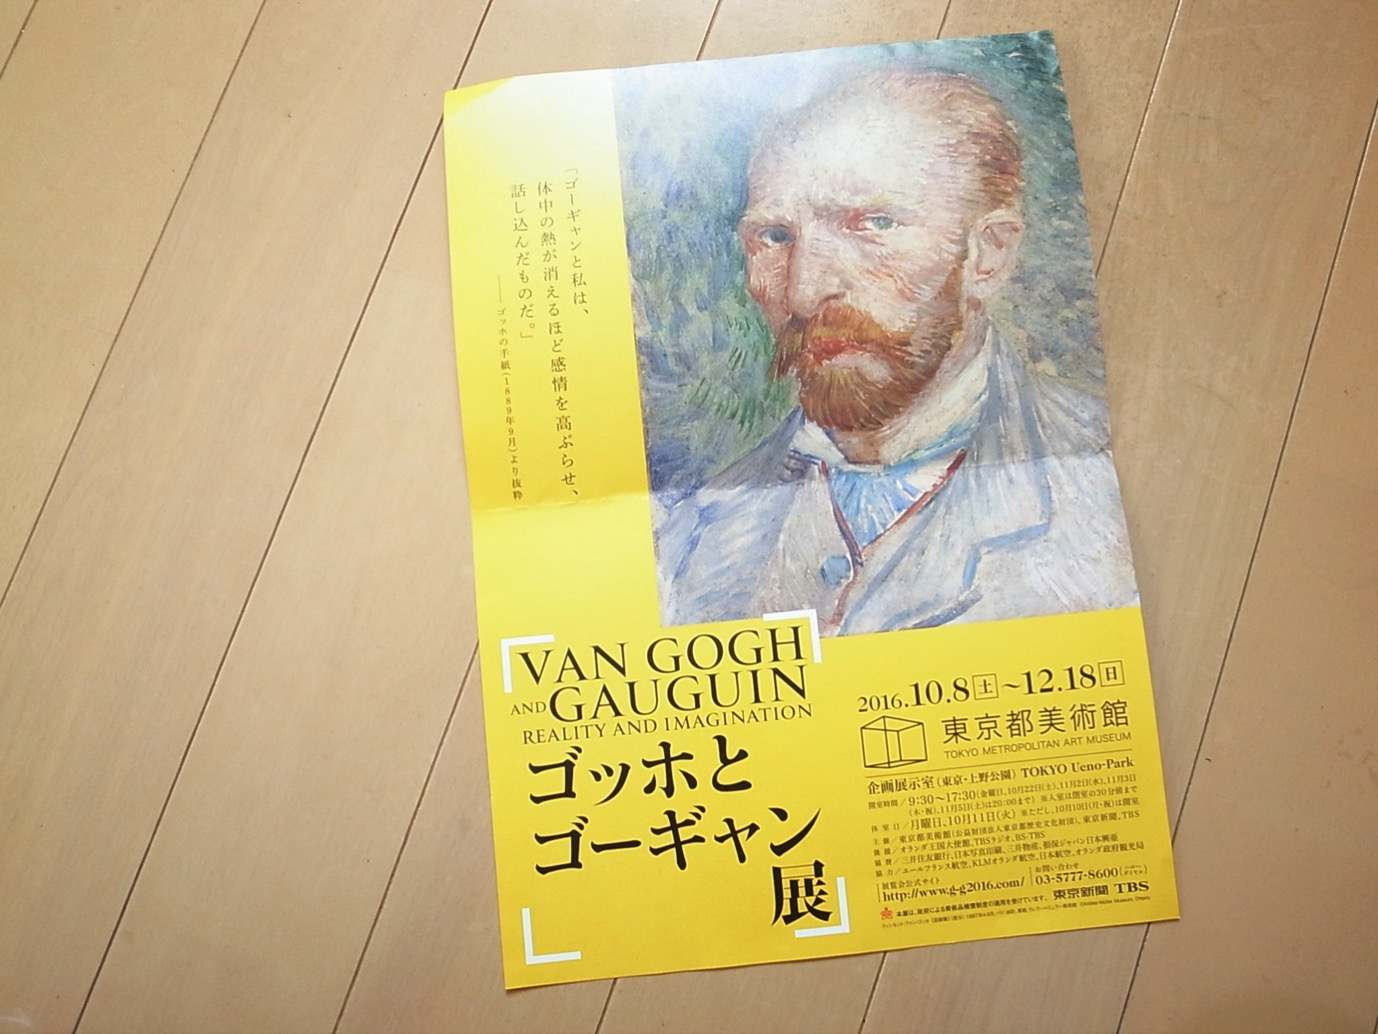 Gogh and gauguin 1